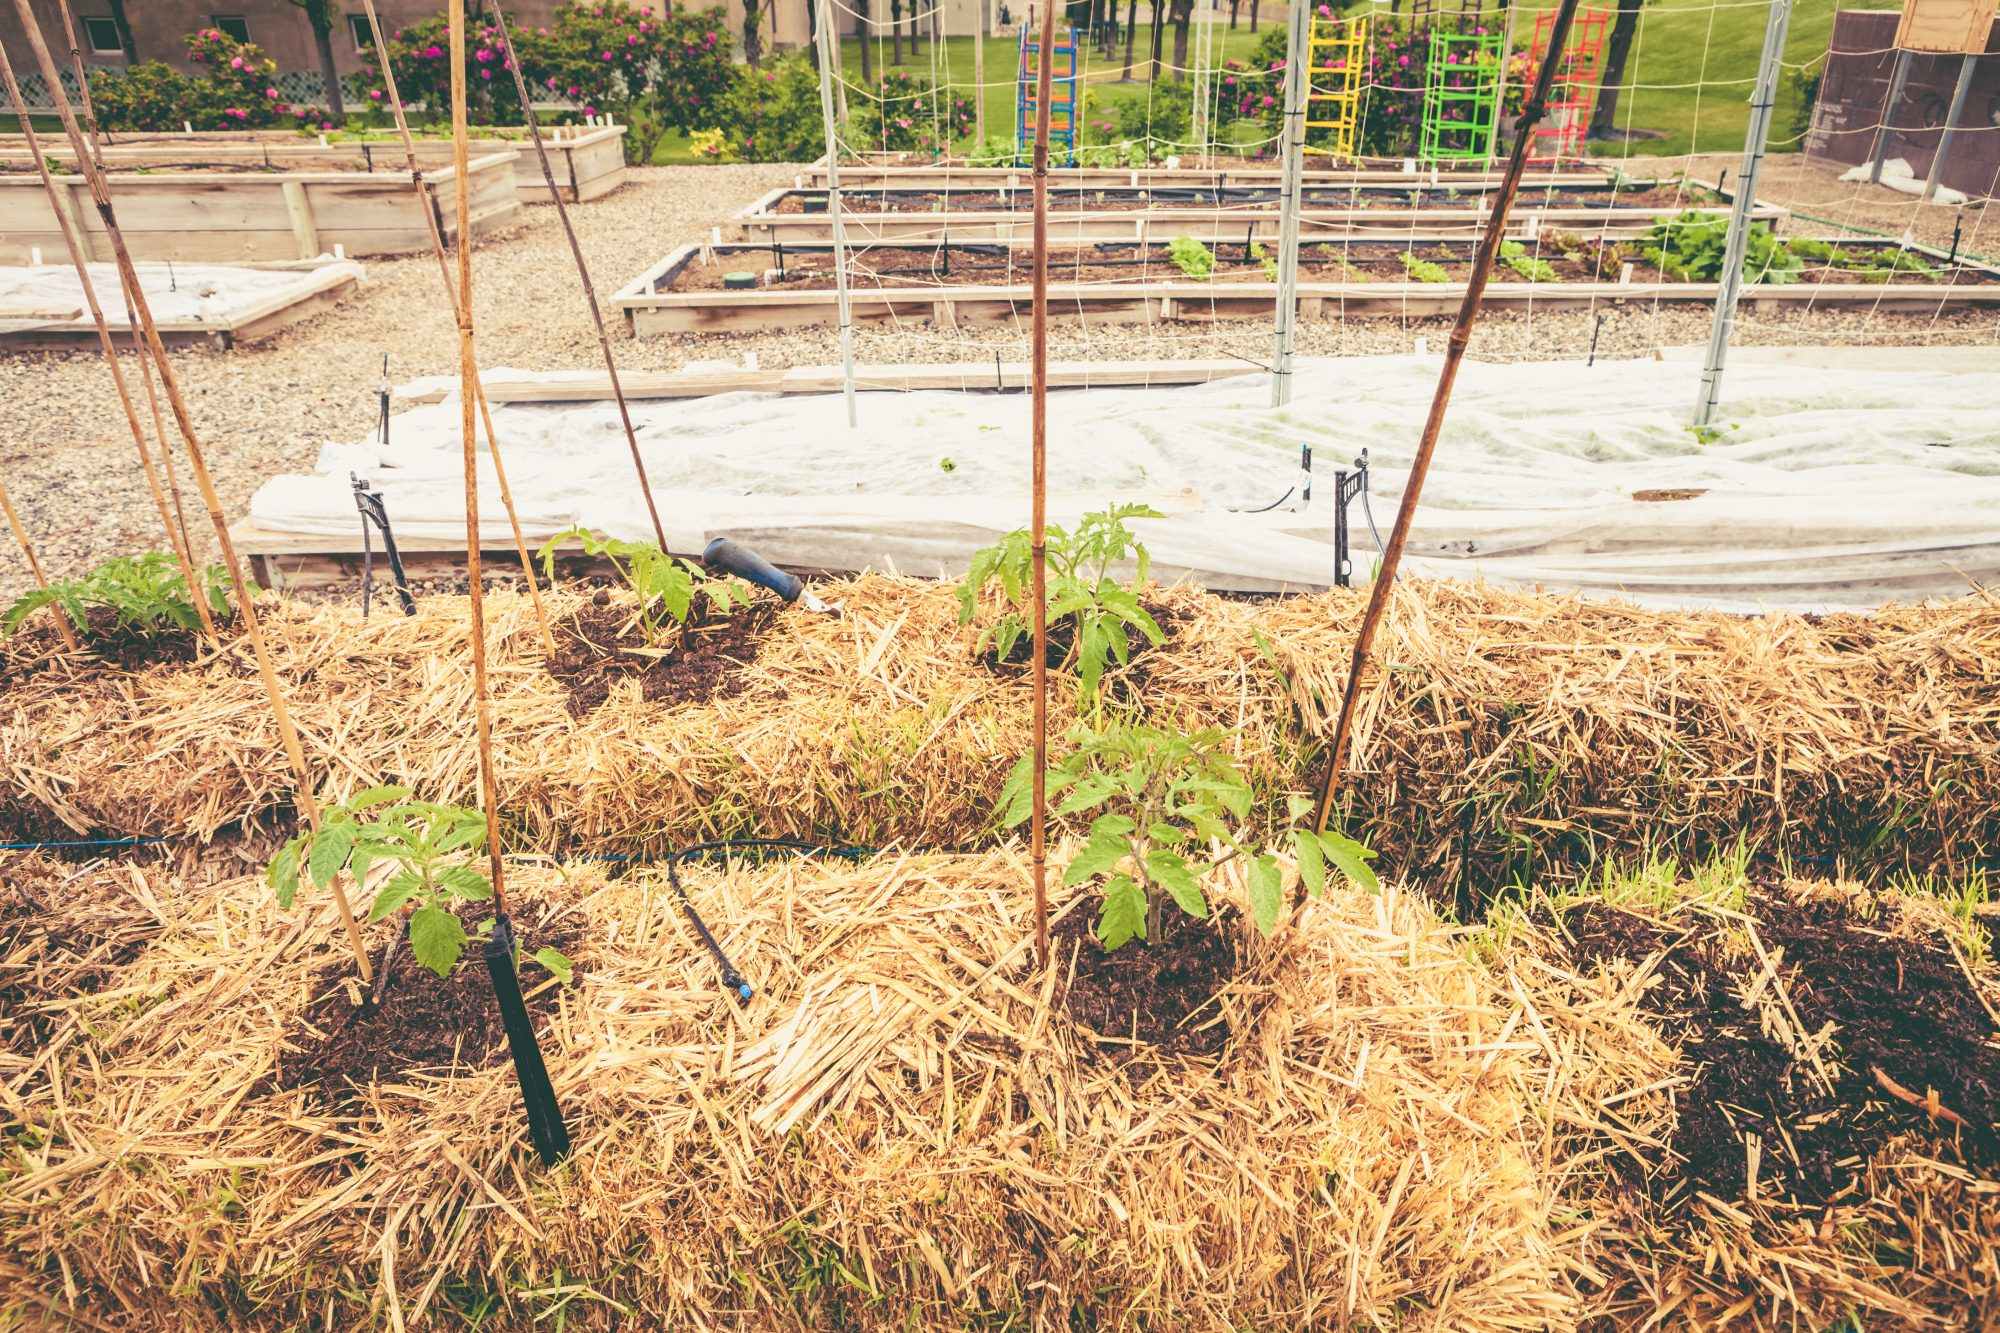 egetable Garden with Tomato Plants Growing From Straw Bales